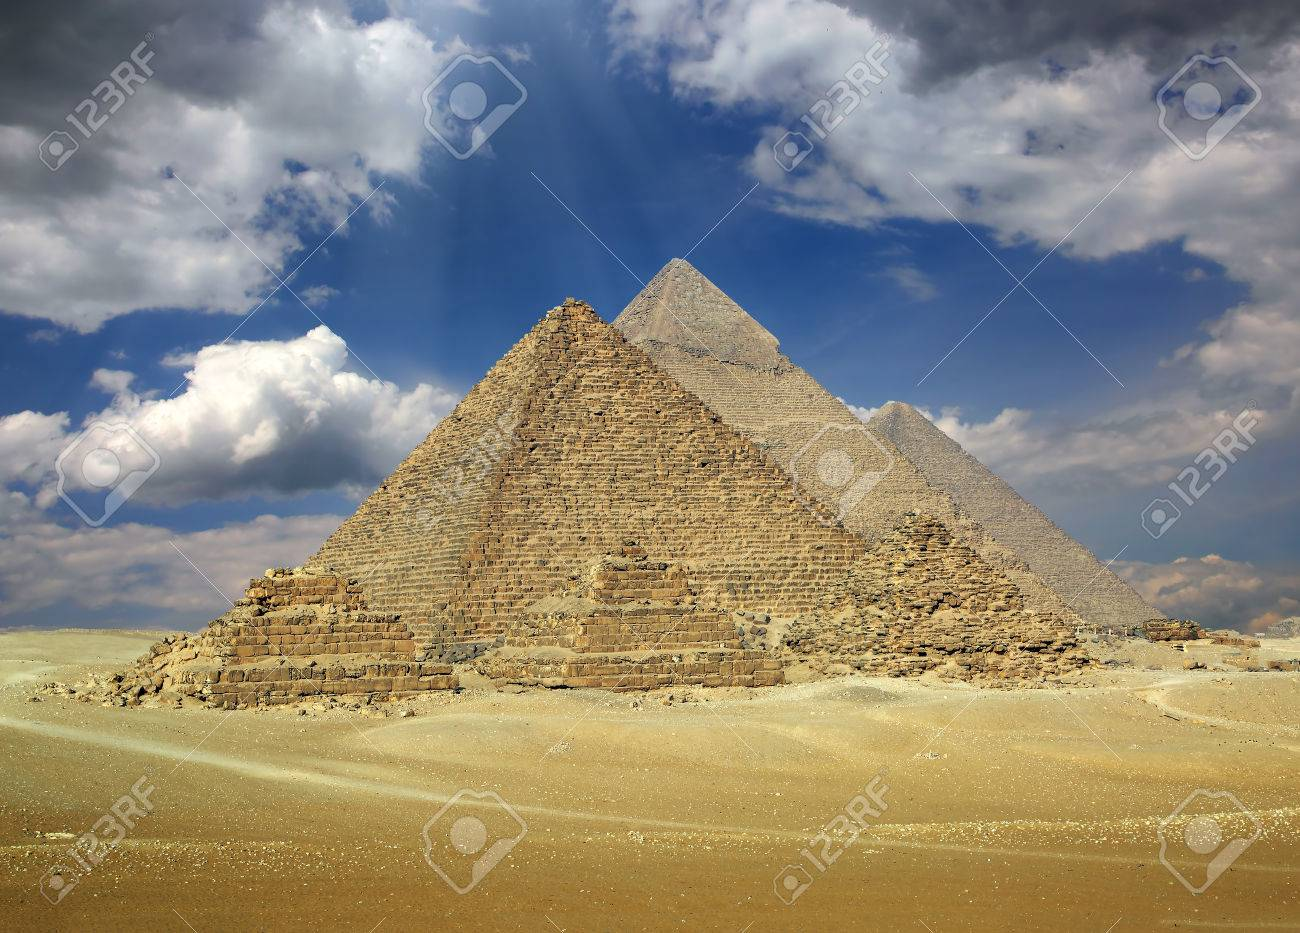 Great pyramids at Giza Cairo in Egypt - 35857487